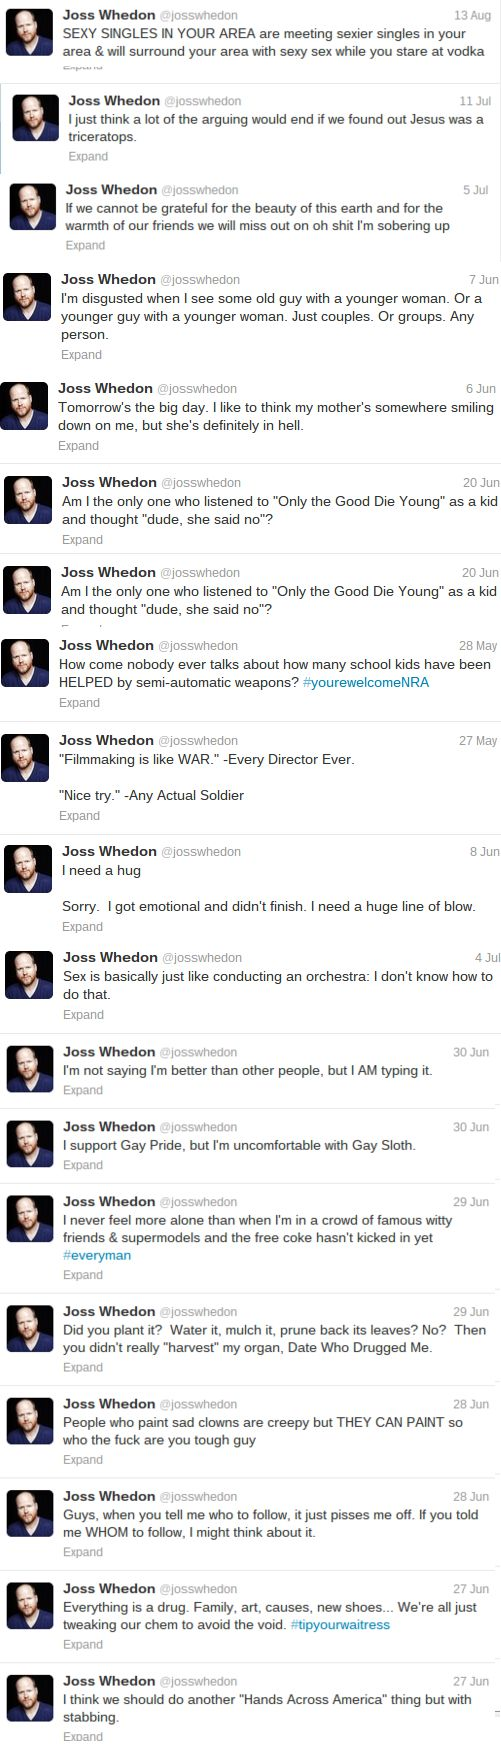 Joss Whedon on Twitter - such a scary brilliant mind....